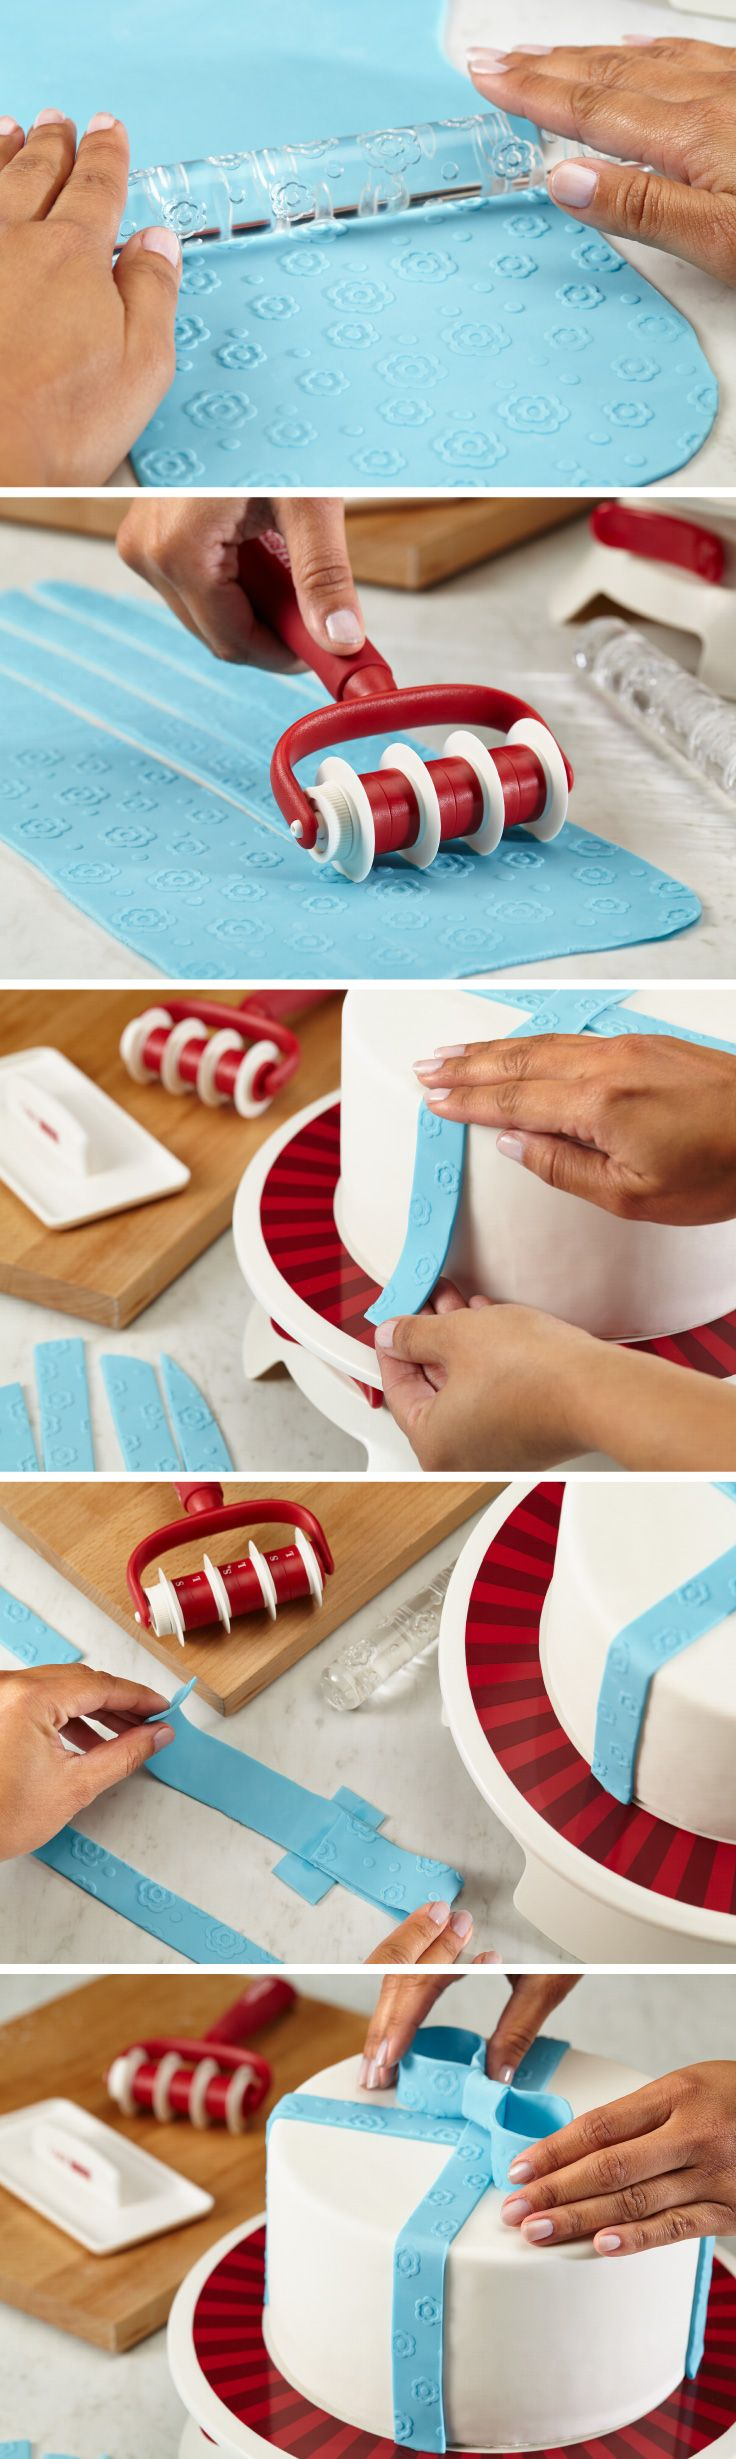 Apply a thin layer of frosting to your cake prior to covering with rolled fondant; this will help the fondant stick. Then, use this fondant smoother to help you easily apply the fondant to the cake while getting rid of wrinkles and puffed areas. Quickly cut strips or trim excess rolled fondant from covered cake bases with a fondant cutter. Visit your local Michaels store or Michaels.com to inspire your inner Cake Boss.